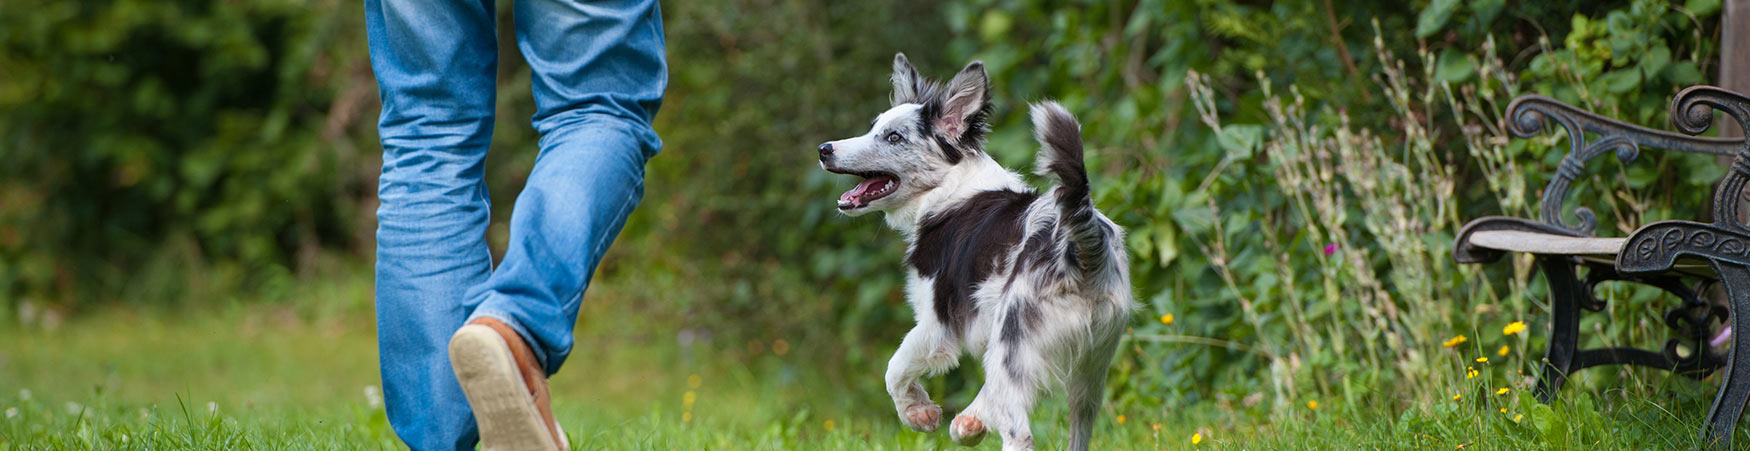 In-home Dog Training, In-home Puppy Training from Colorado Springs to Pueblo